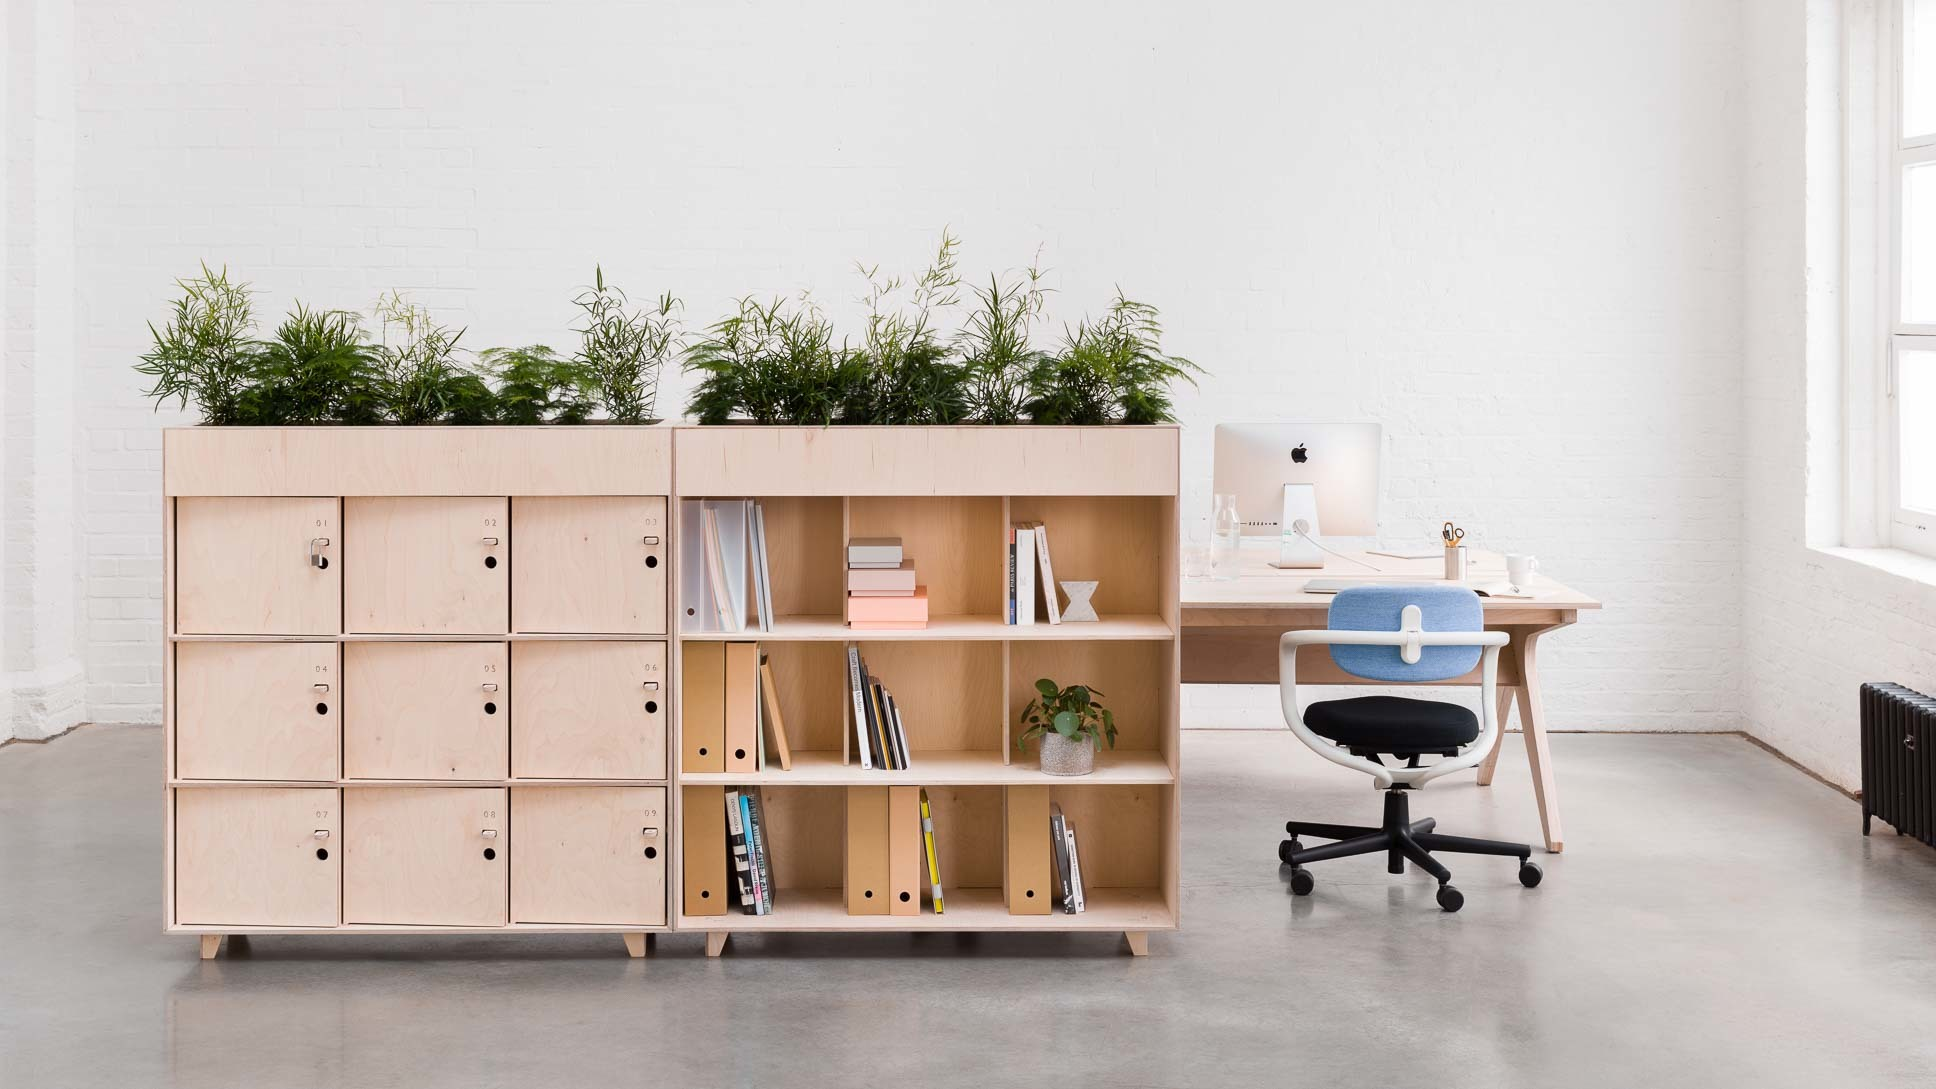 opendesk_furniture_fin-locker_product-page_gallery-image-opendesk_shot3_2046.jpg